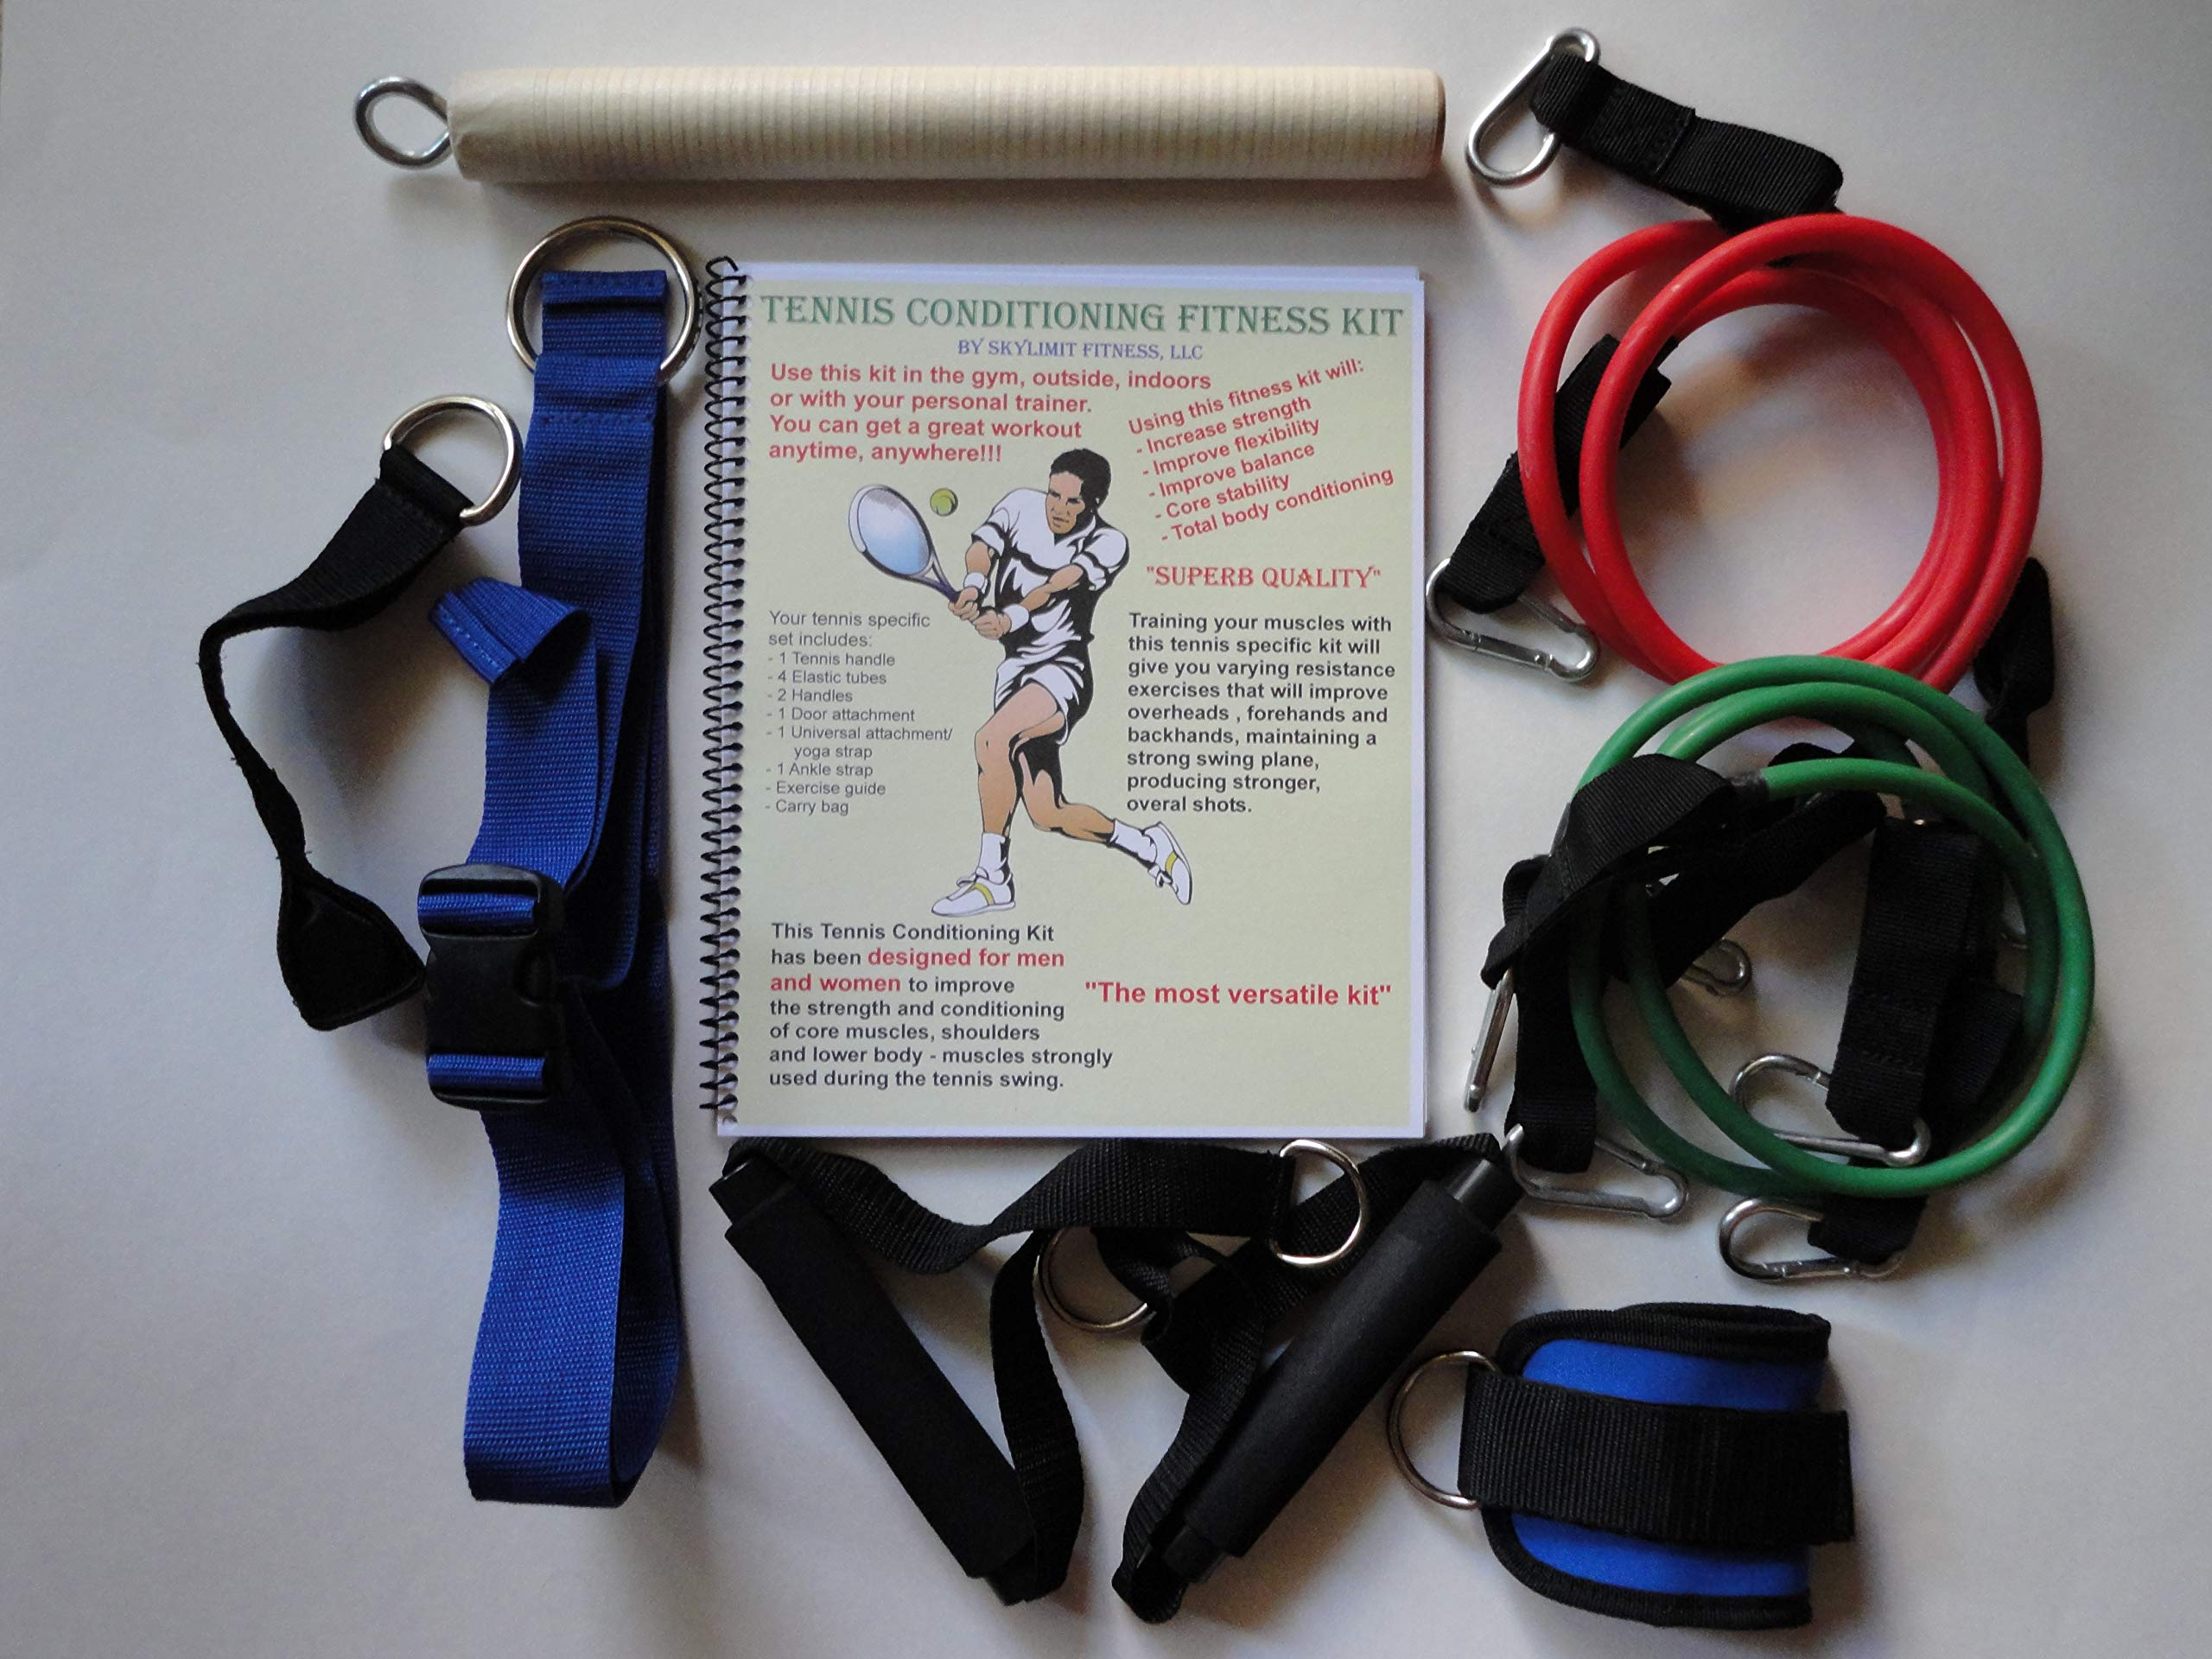 Tennis Conditioning Fitness Kit #1TCFK Ideal Tool to Improve Strength, Flexibility,Core Stability, Balance. You can use it on Tennis Court,Home or in The Gym.